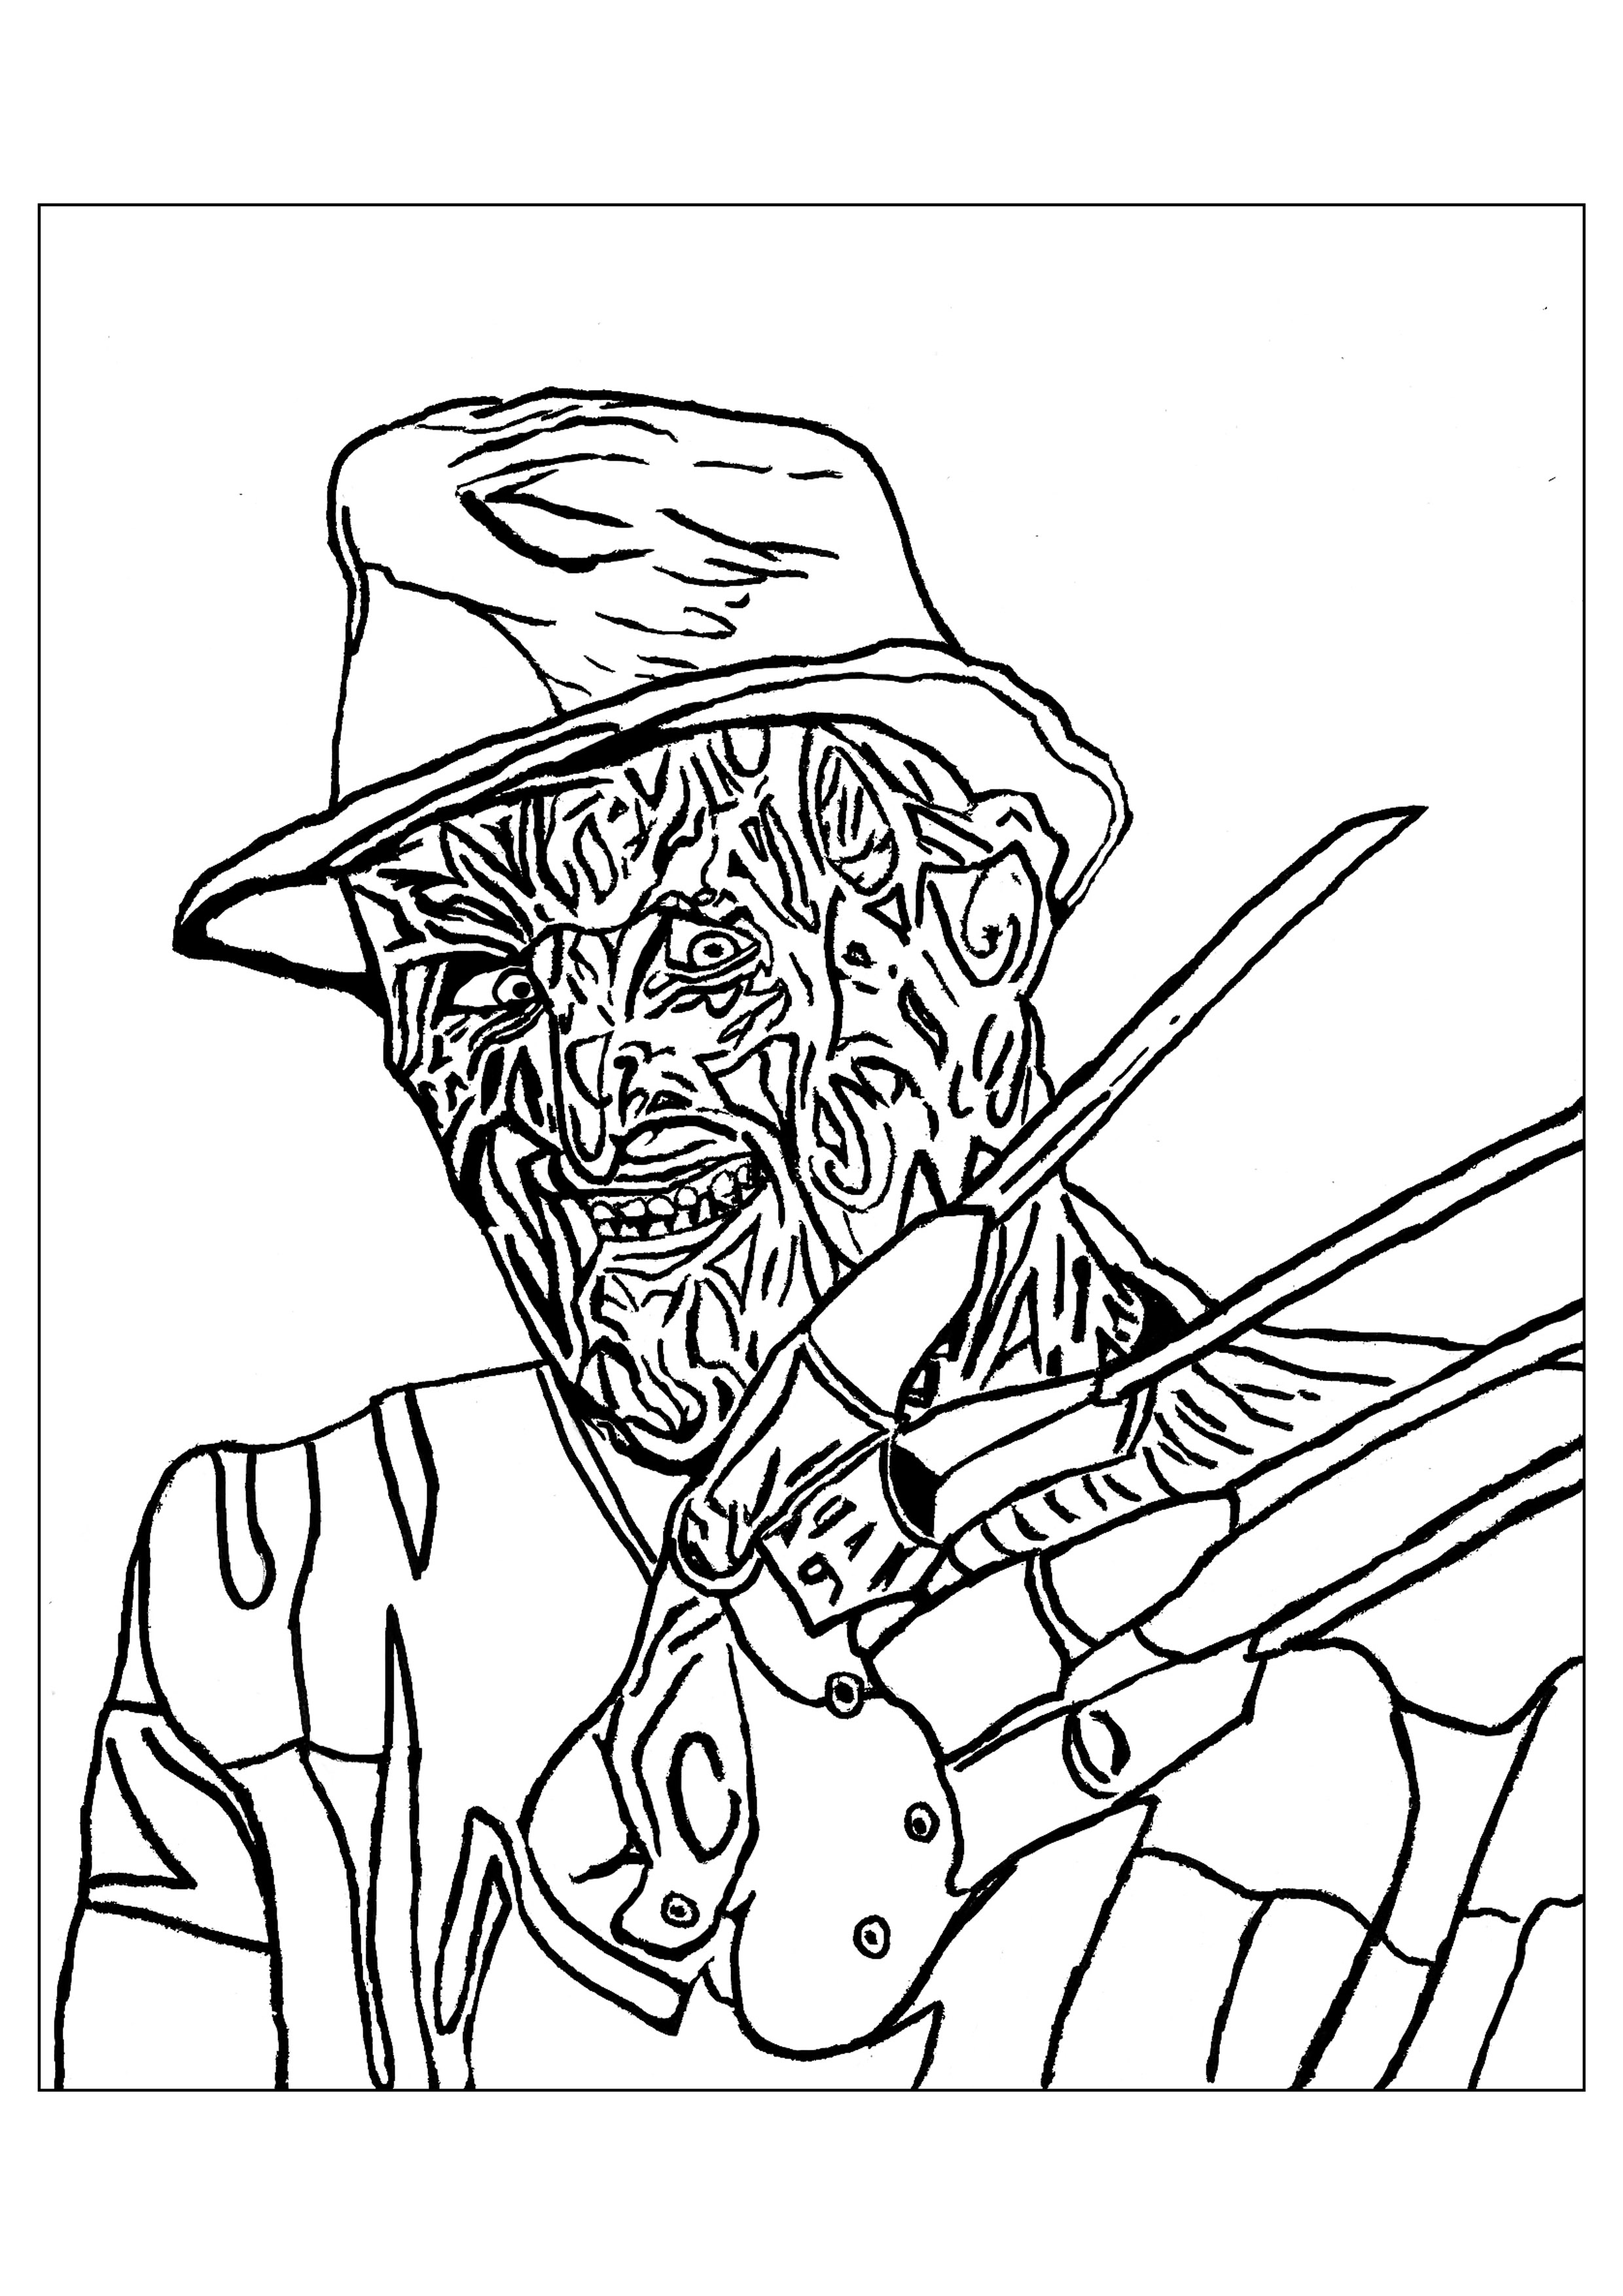 Halloween to download - Halloween - Coloring pages for kids